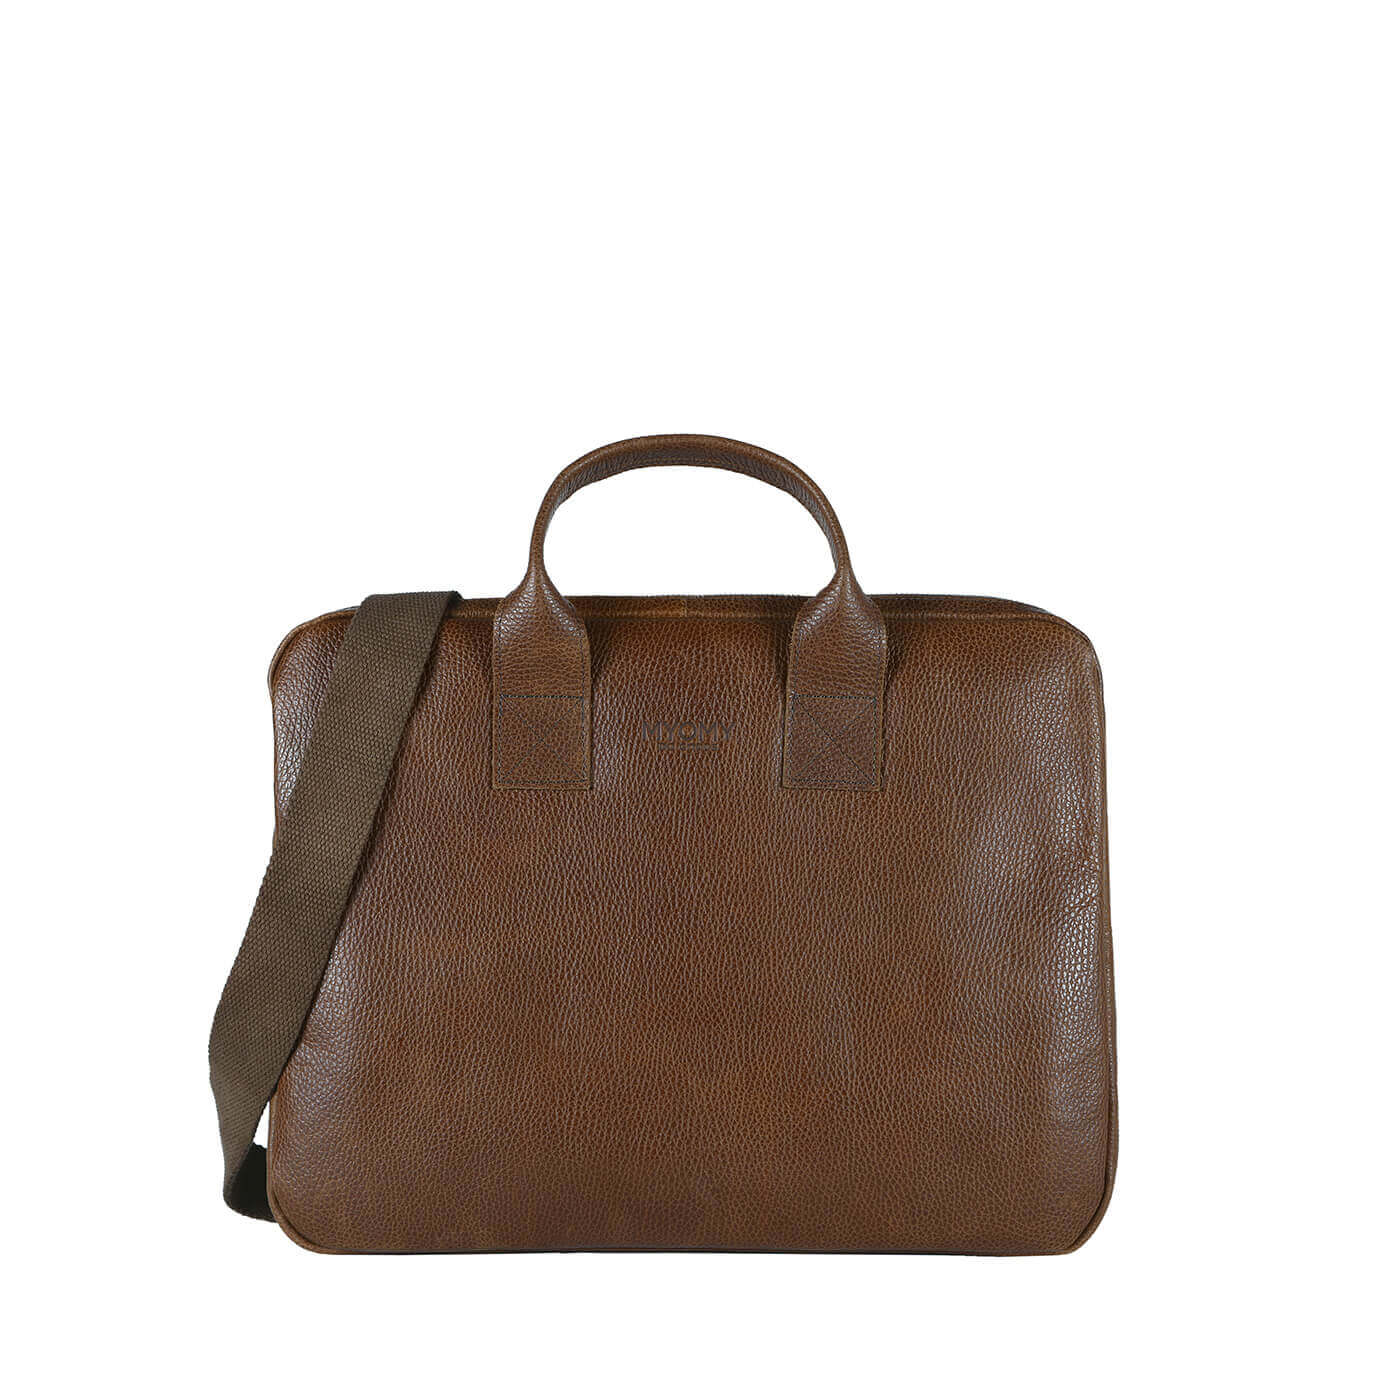 MY PHILIP BAG Laptop bag – rambler brandy